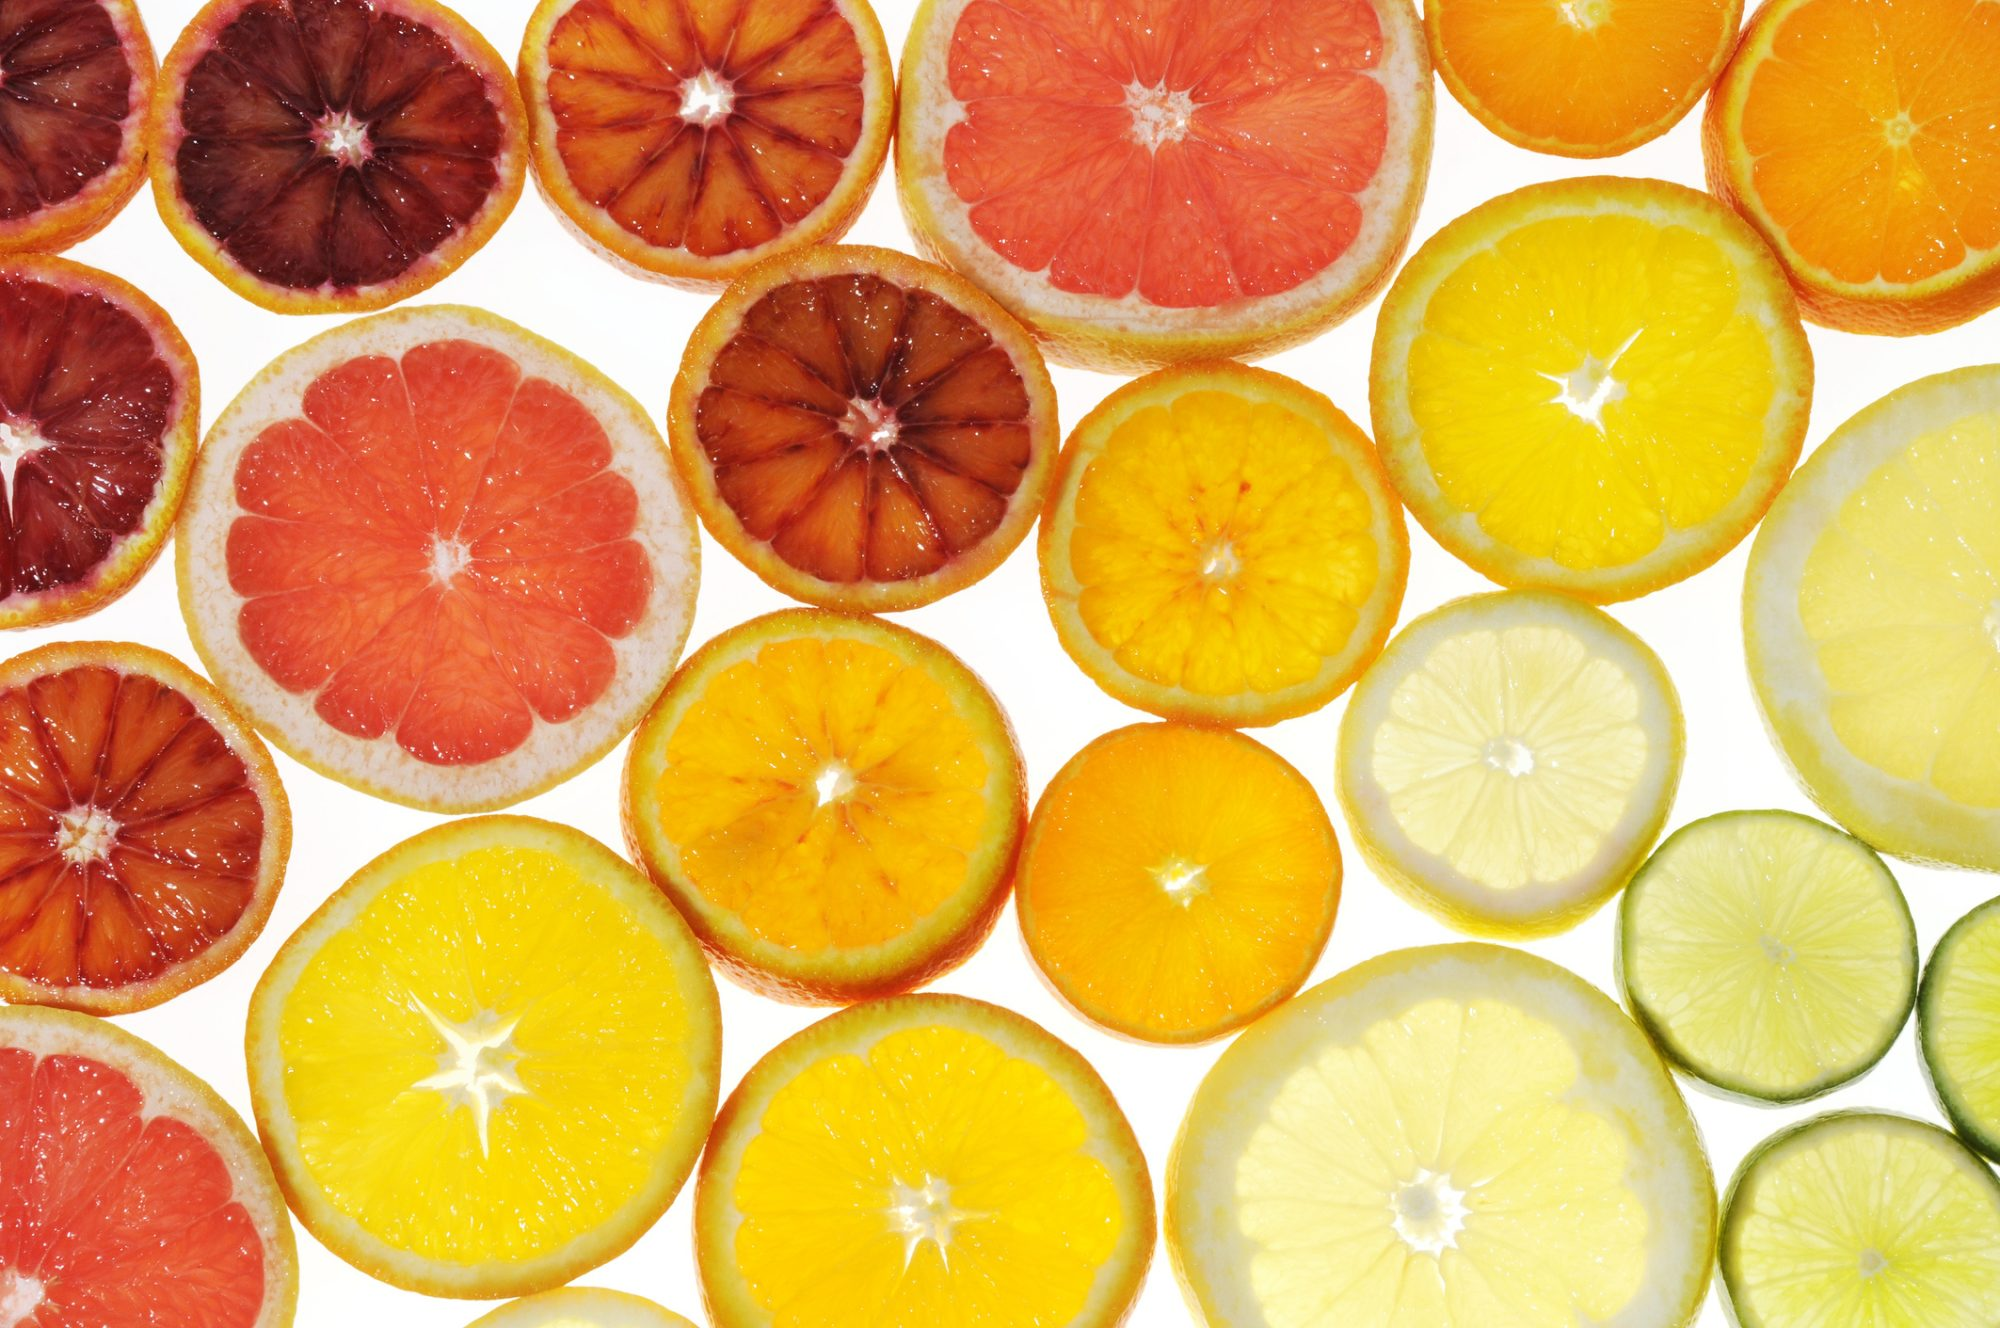 Slices of citrus fruit image